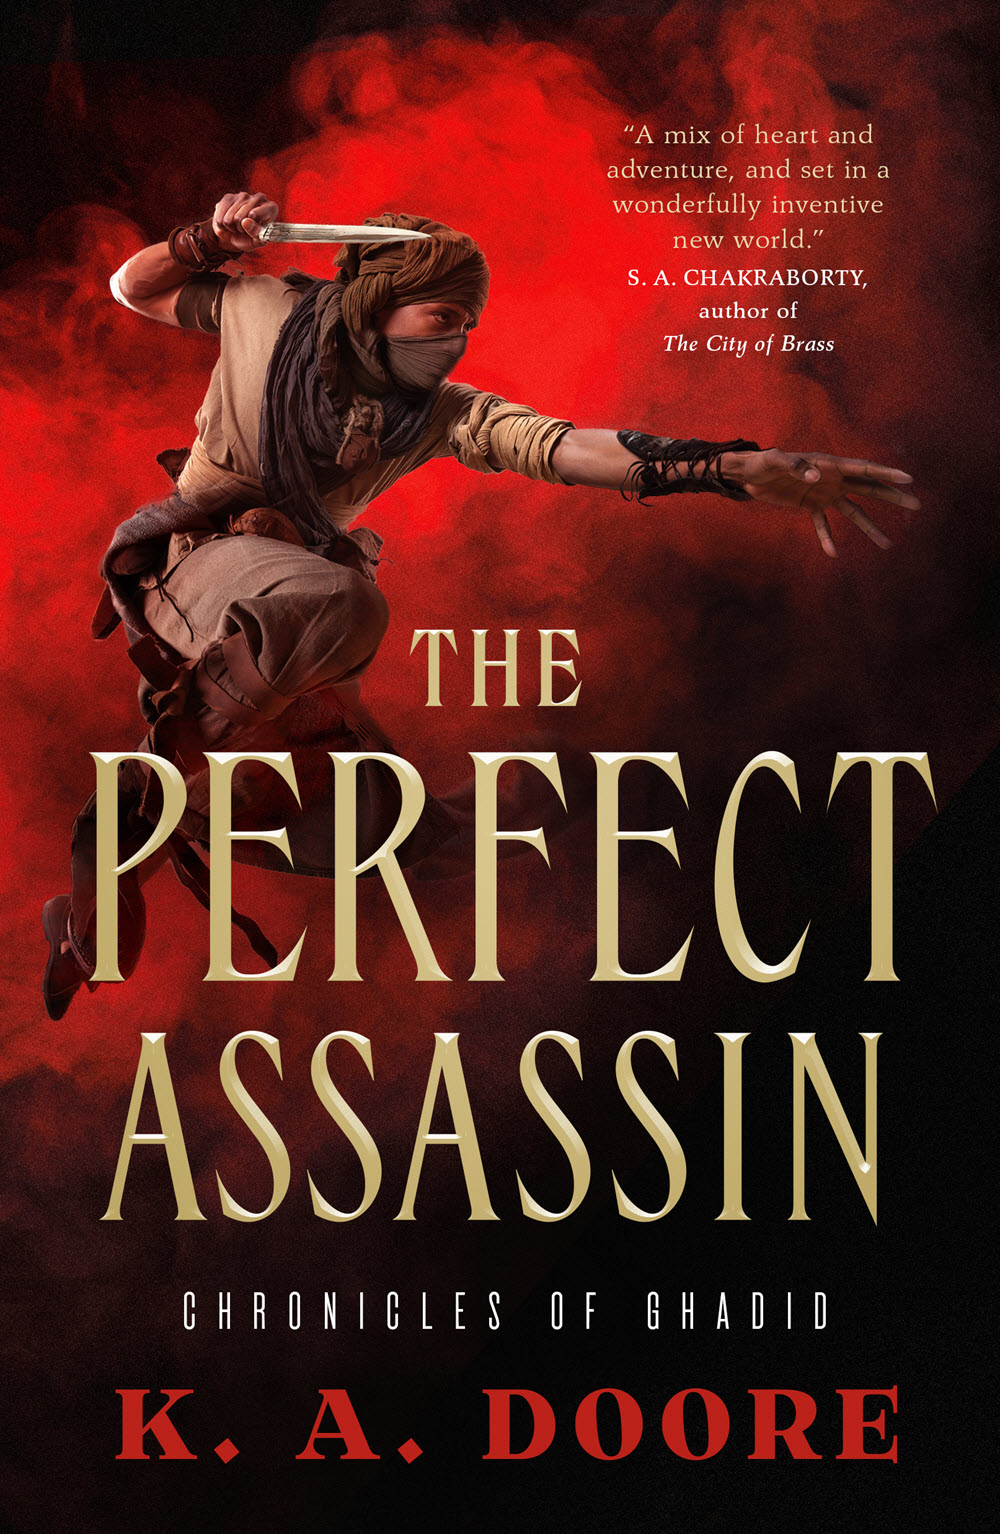 THE PERFECT ASSASSIN - K.A. Doore